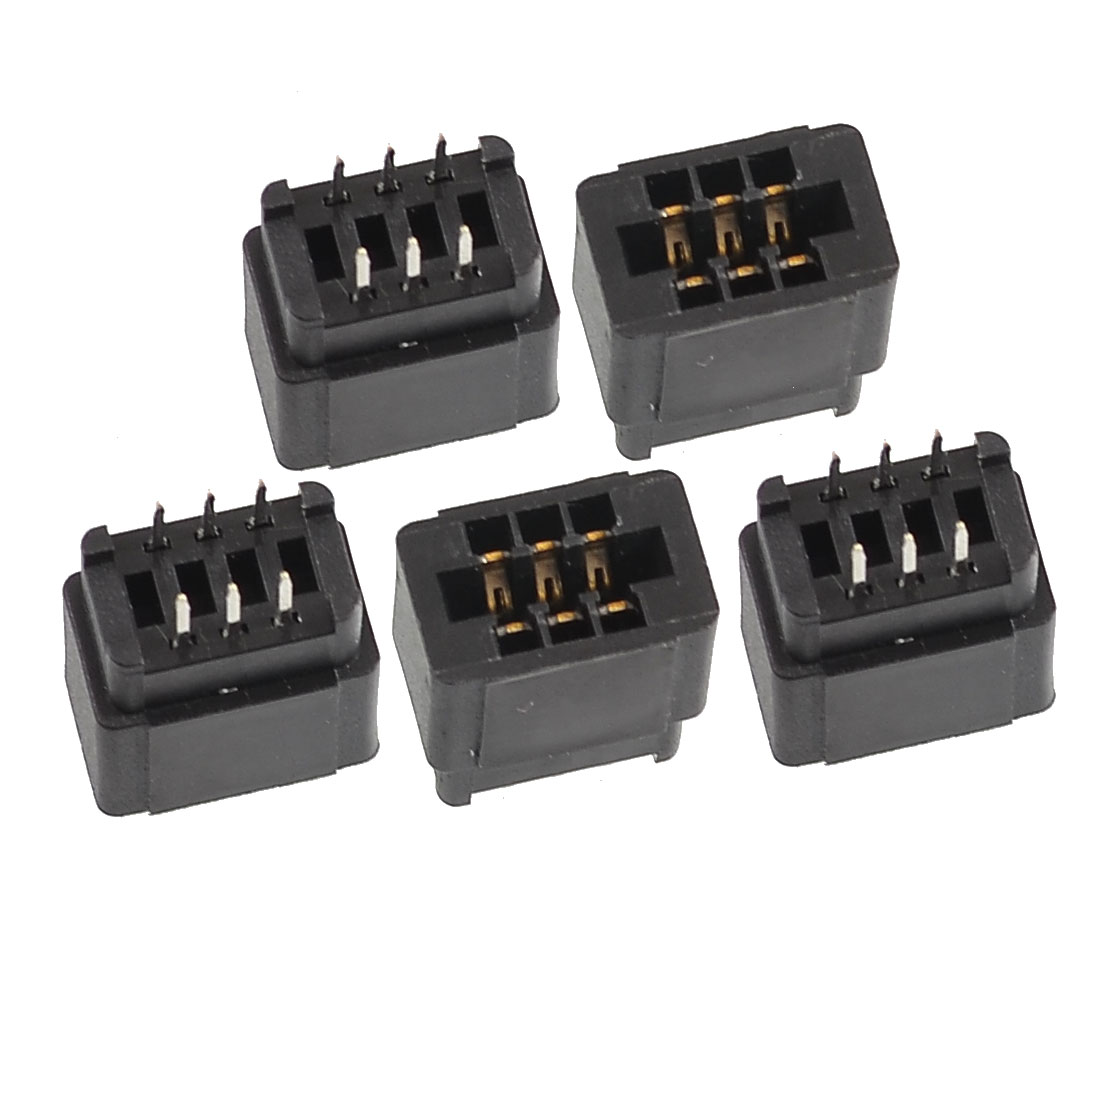 5 Pcs Black Two Rows 6 Pins 2.54mm Pitch PCB Board Socket Headers